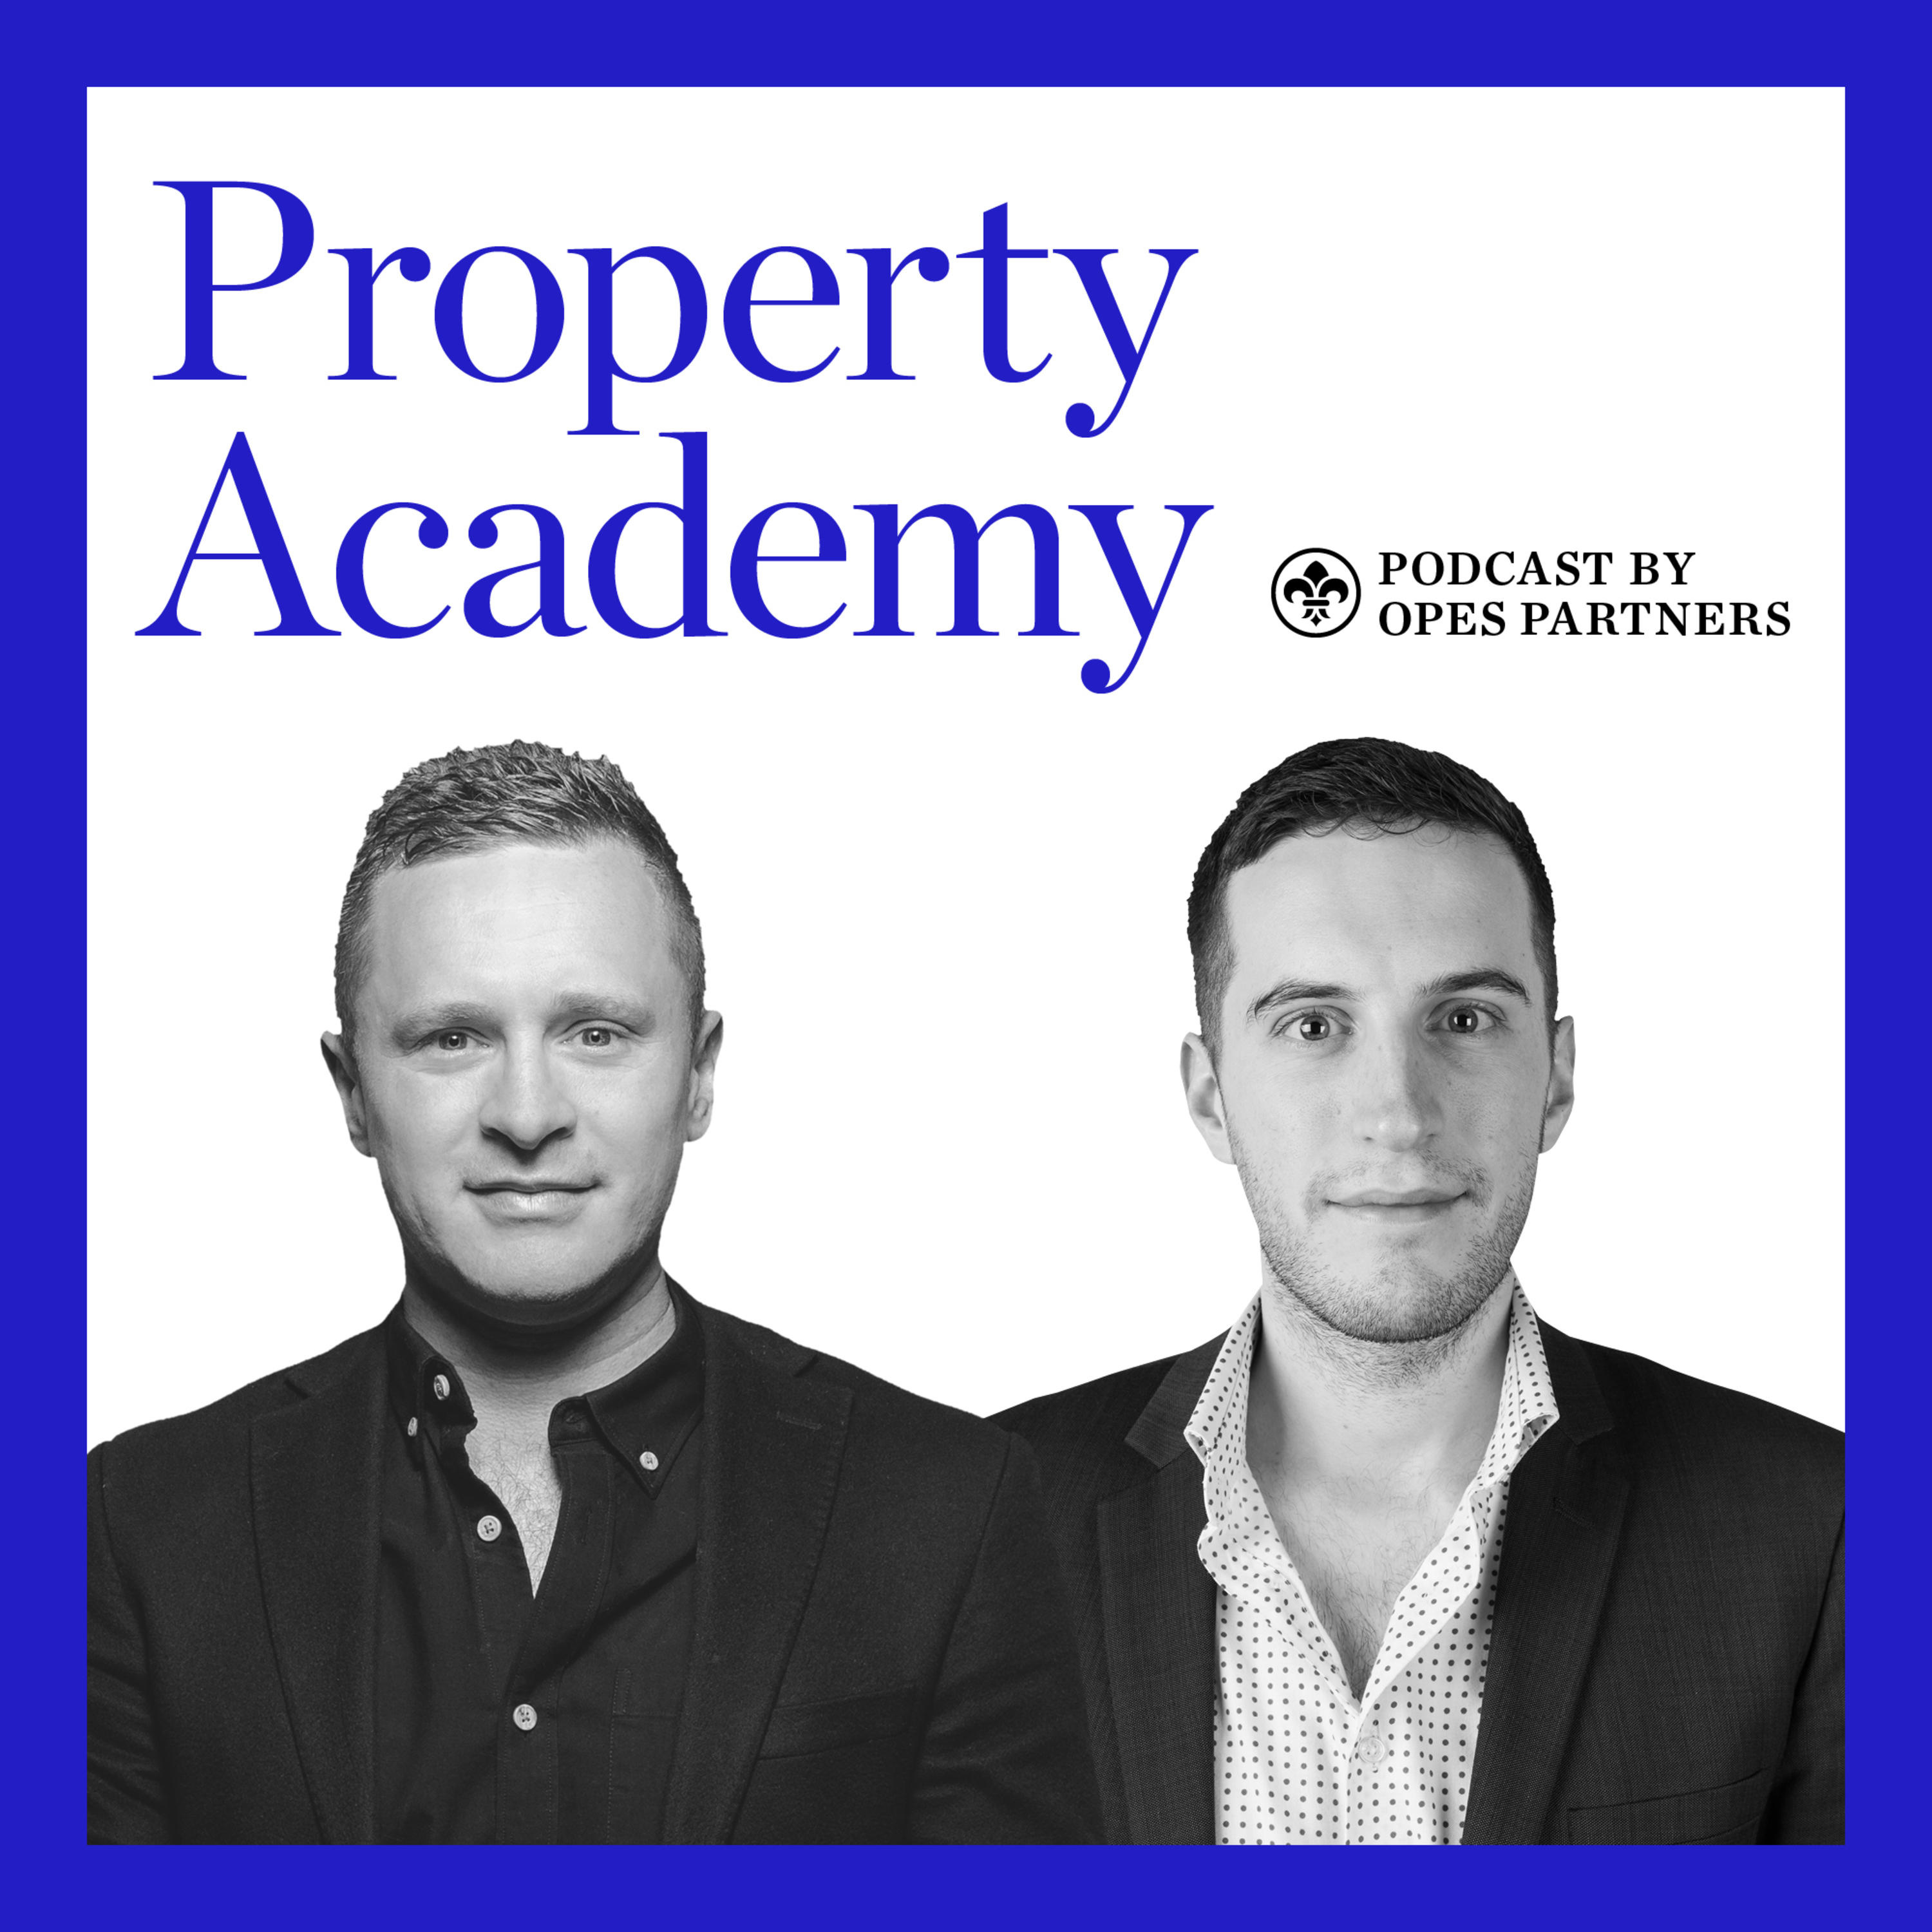 Should I Invest In An Apartment As a 1st Step in Property Investment? ⎮ Ep. 532